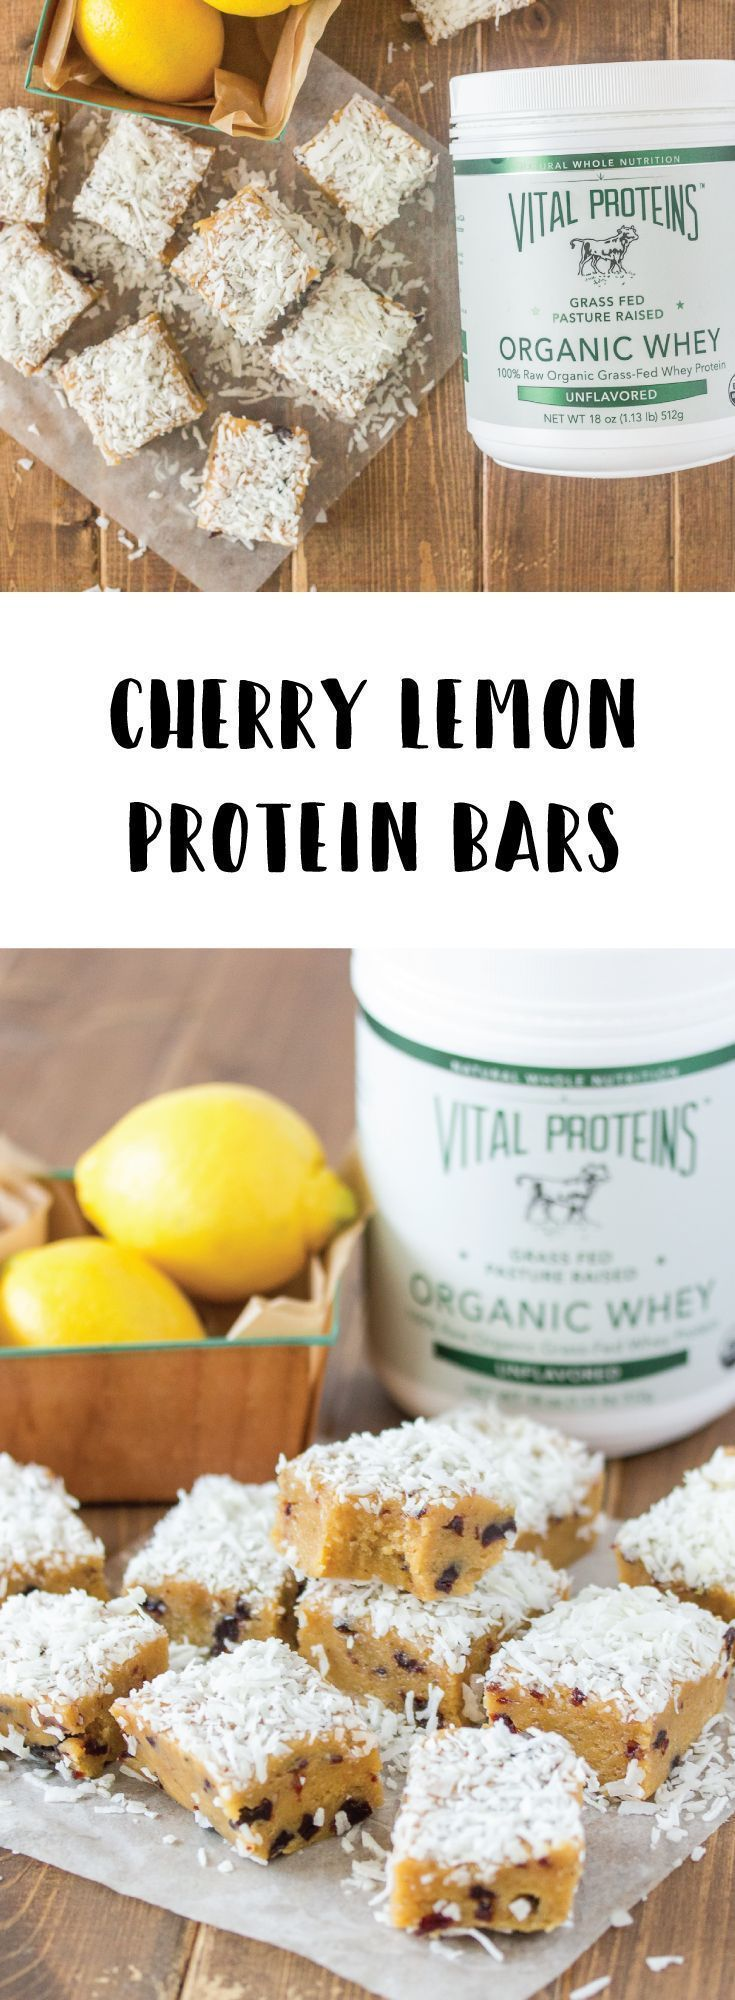 Make your own protein bars with our grass-fed Organic Whey protein!